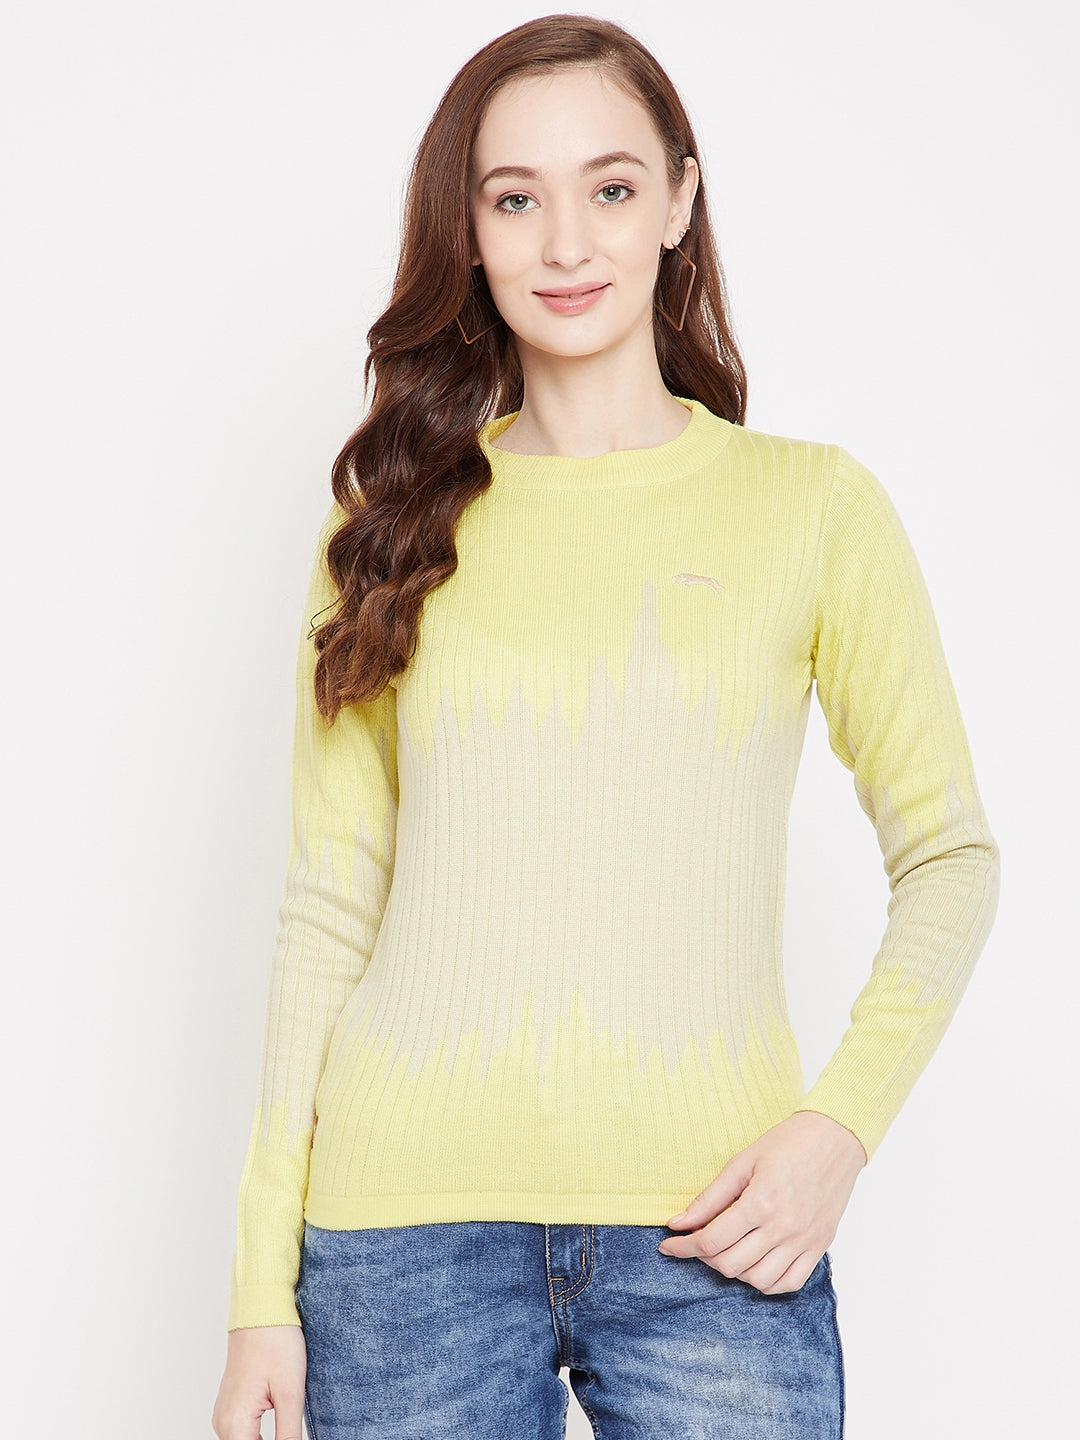 JUMP USA Women Yellow Ribbed Pullover Sweater